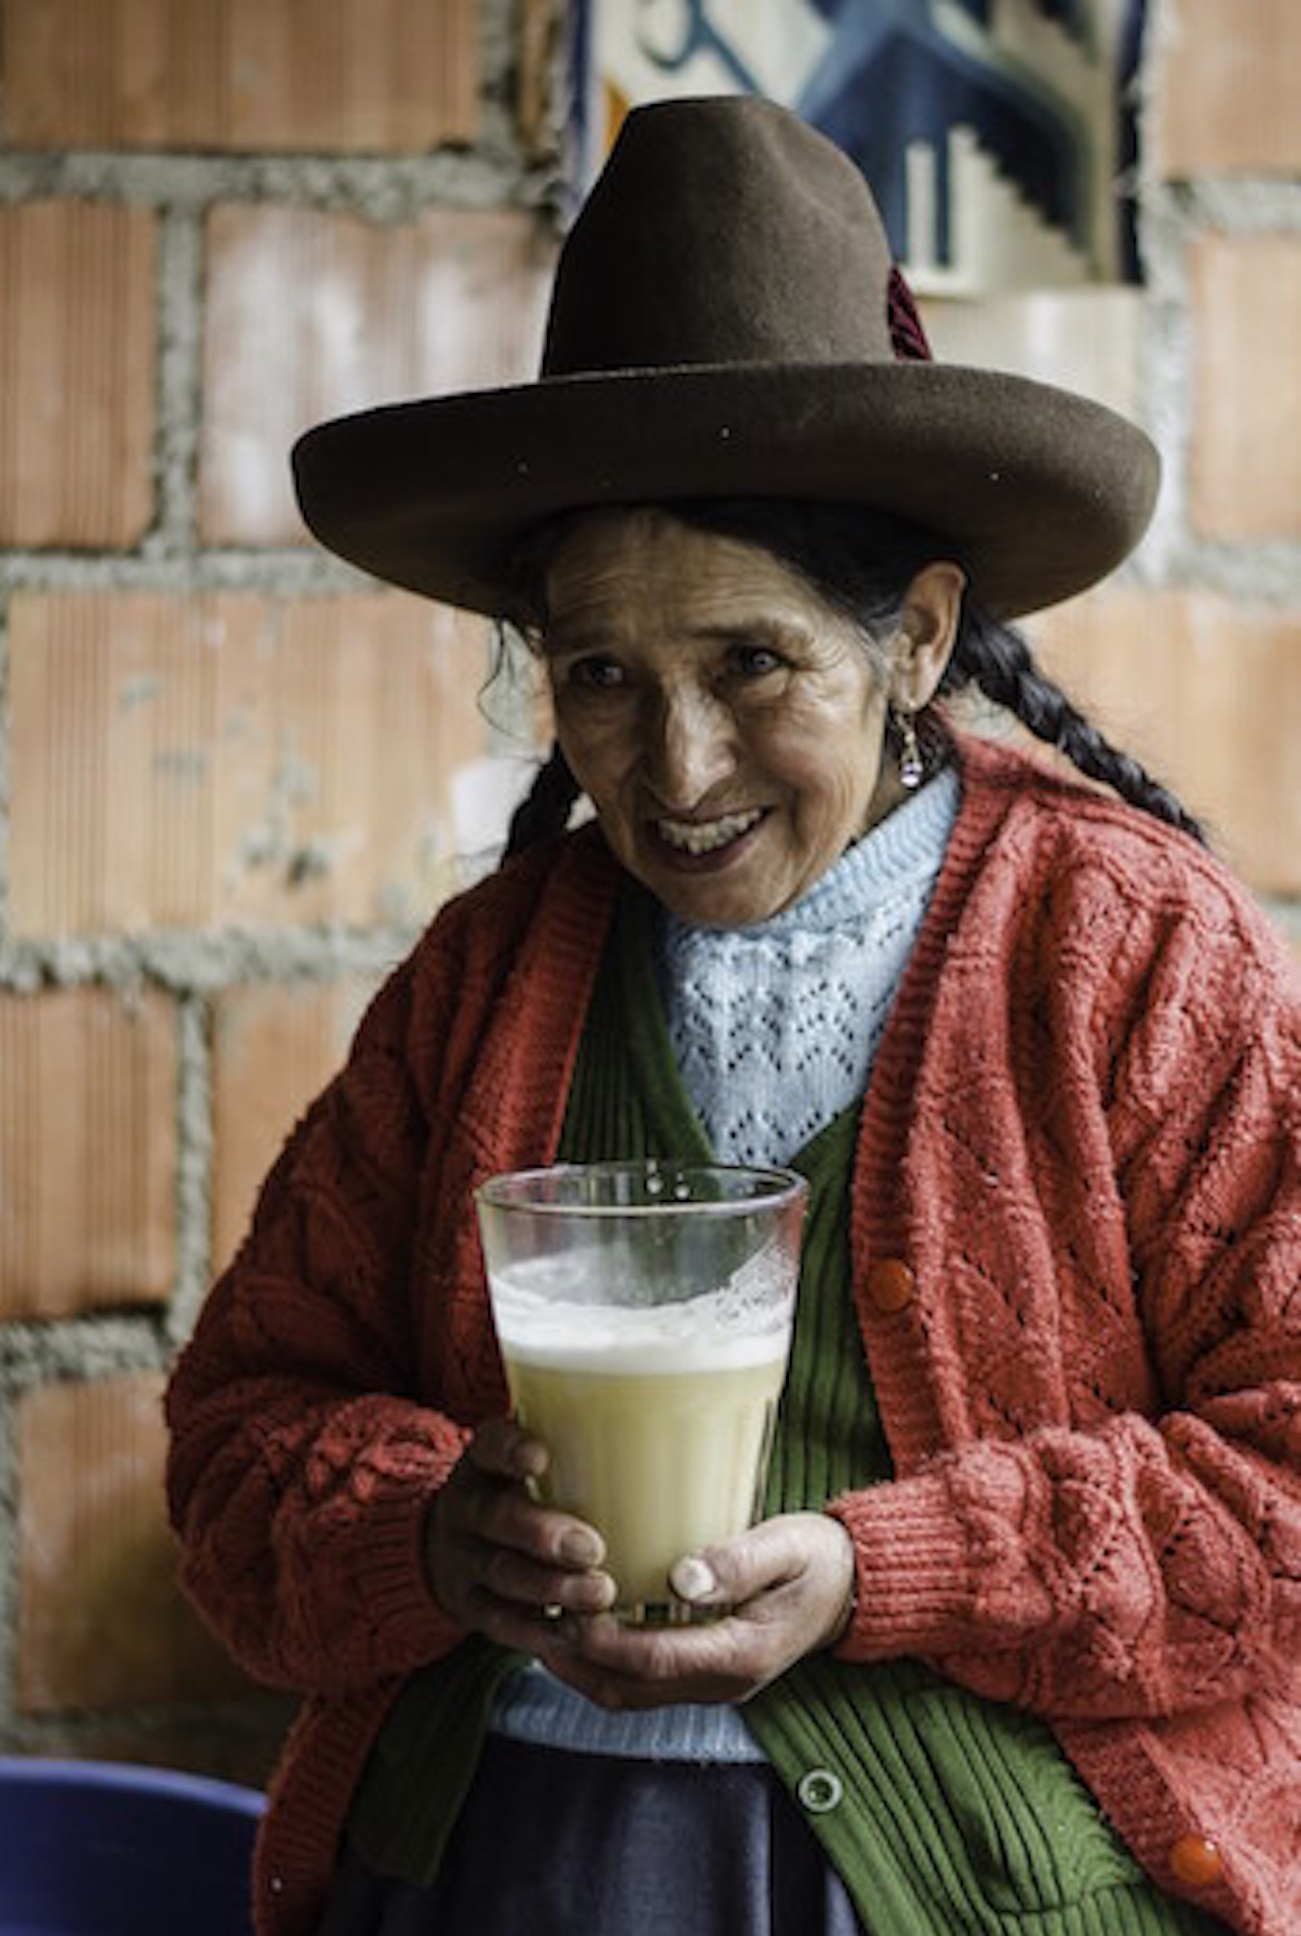 """Hunting the Lost Beer of the Incan Empire - Hidden Compass August 2017When the bar owner placed the lukewarm glass of cloudy, phlegm-colored beer in front of me, I could tell the description """"it's an acquired taste"""" would be an understatement. Read More"""